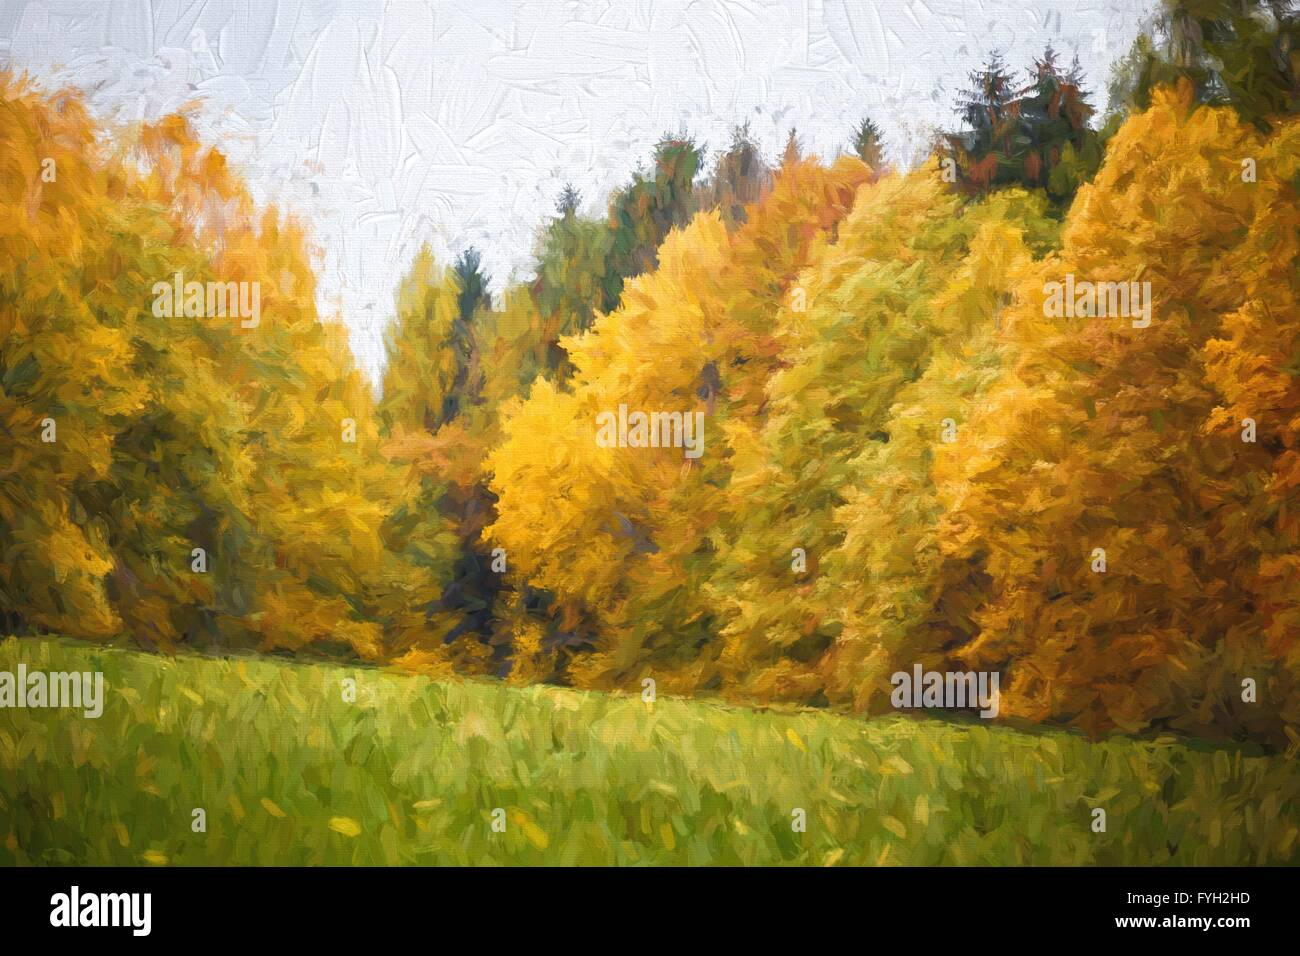 herbstliche landschaft lgem lde mit herbst bl tter im wald stockfoto bild 103022793 alamy. Black Bedroom Furniture Sets. Home Design Ideas